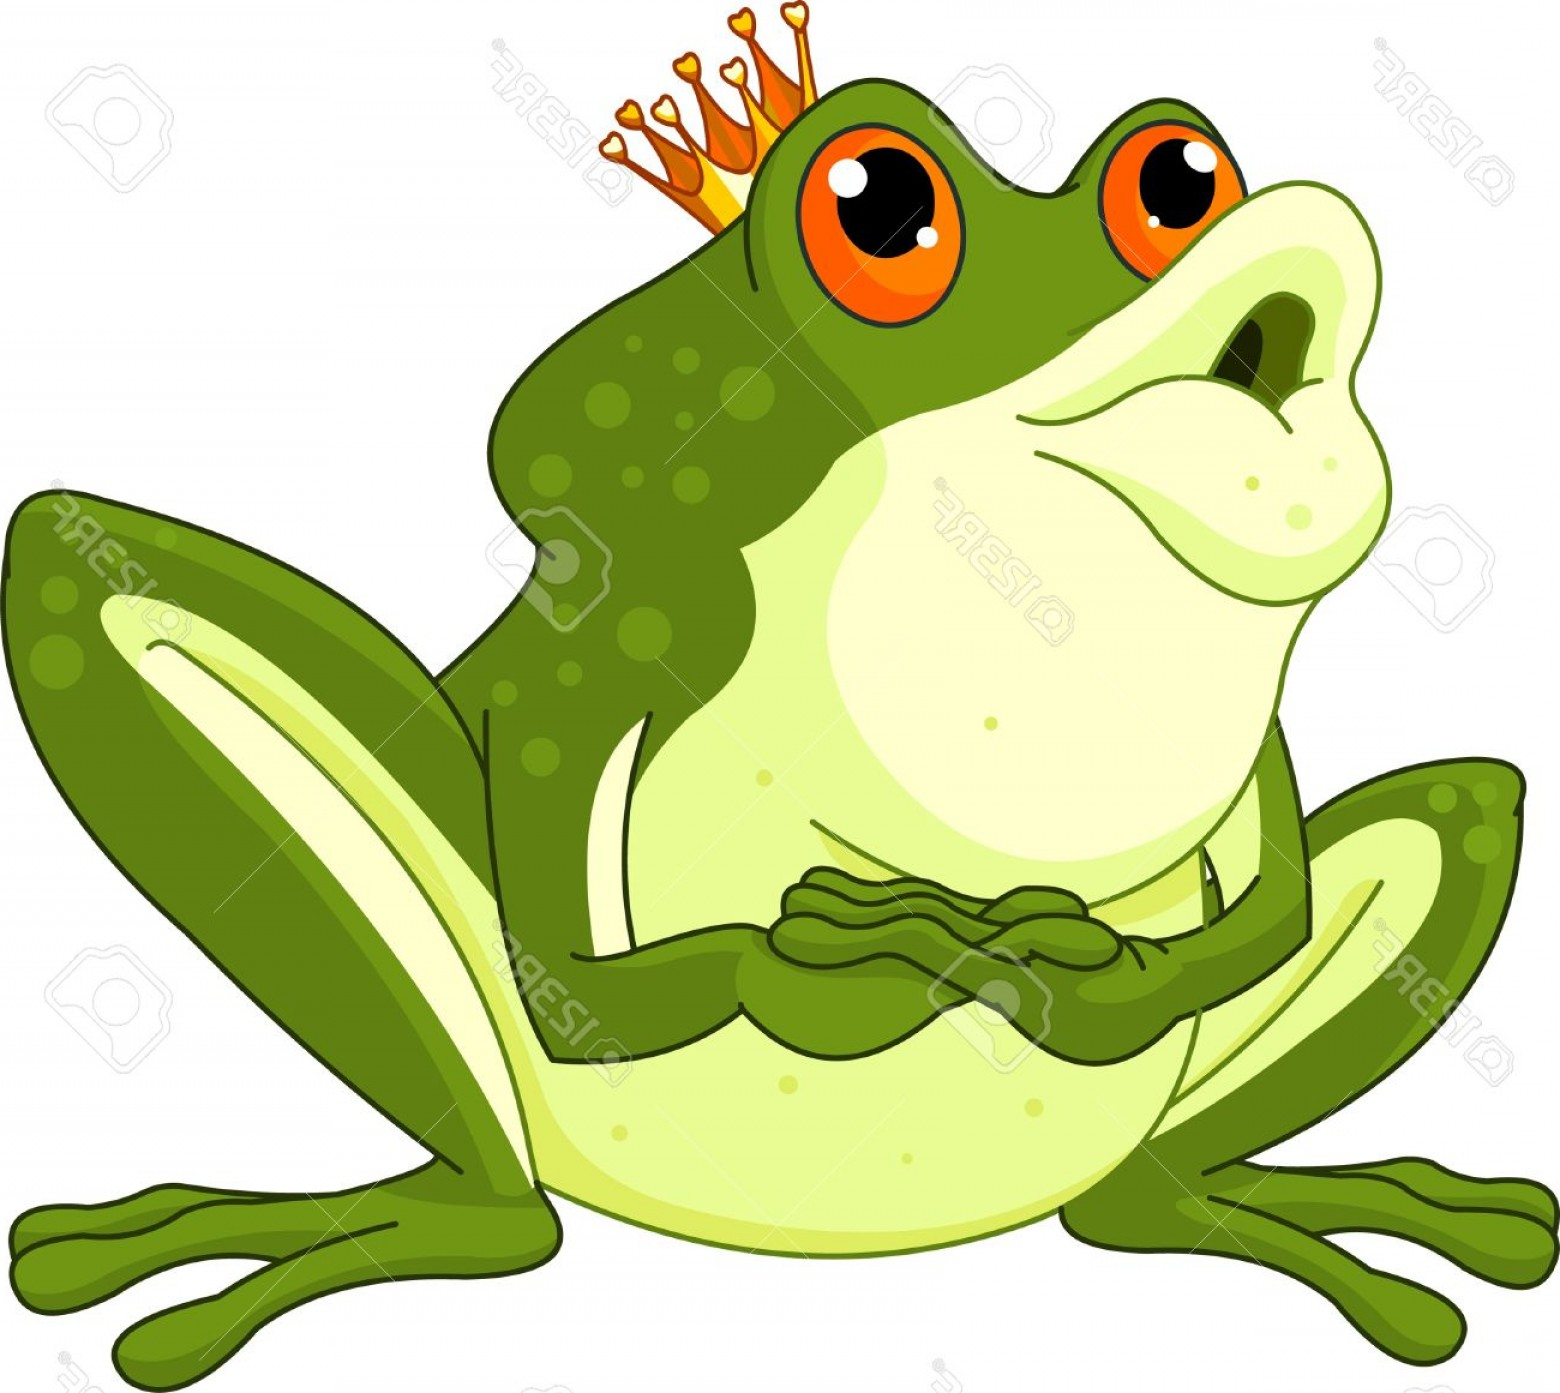 Kiss Clip Art Vector: Photoclip Art Of A Frog Prince Waiting To Be Kissed